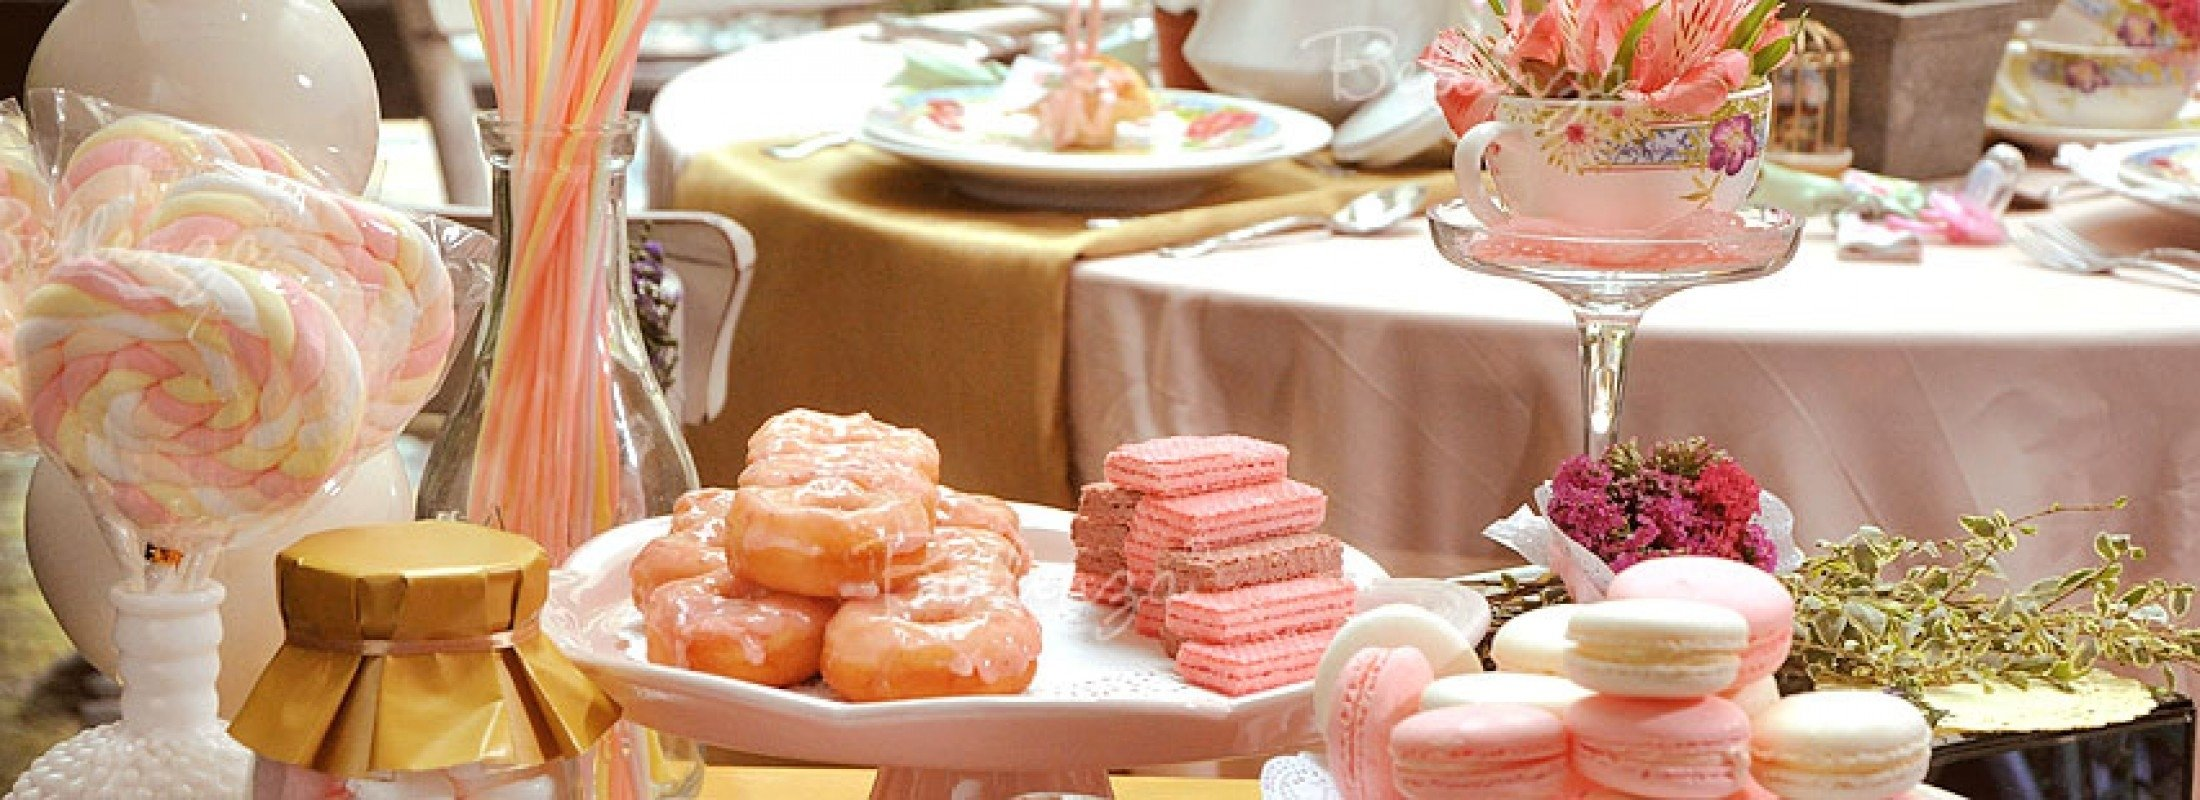 10 Most Recommended Baby Shower Candy Table Ideas oh sweet baby a dessert table for a summer baby shower unique 2